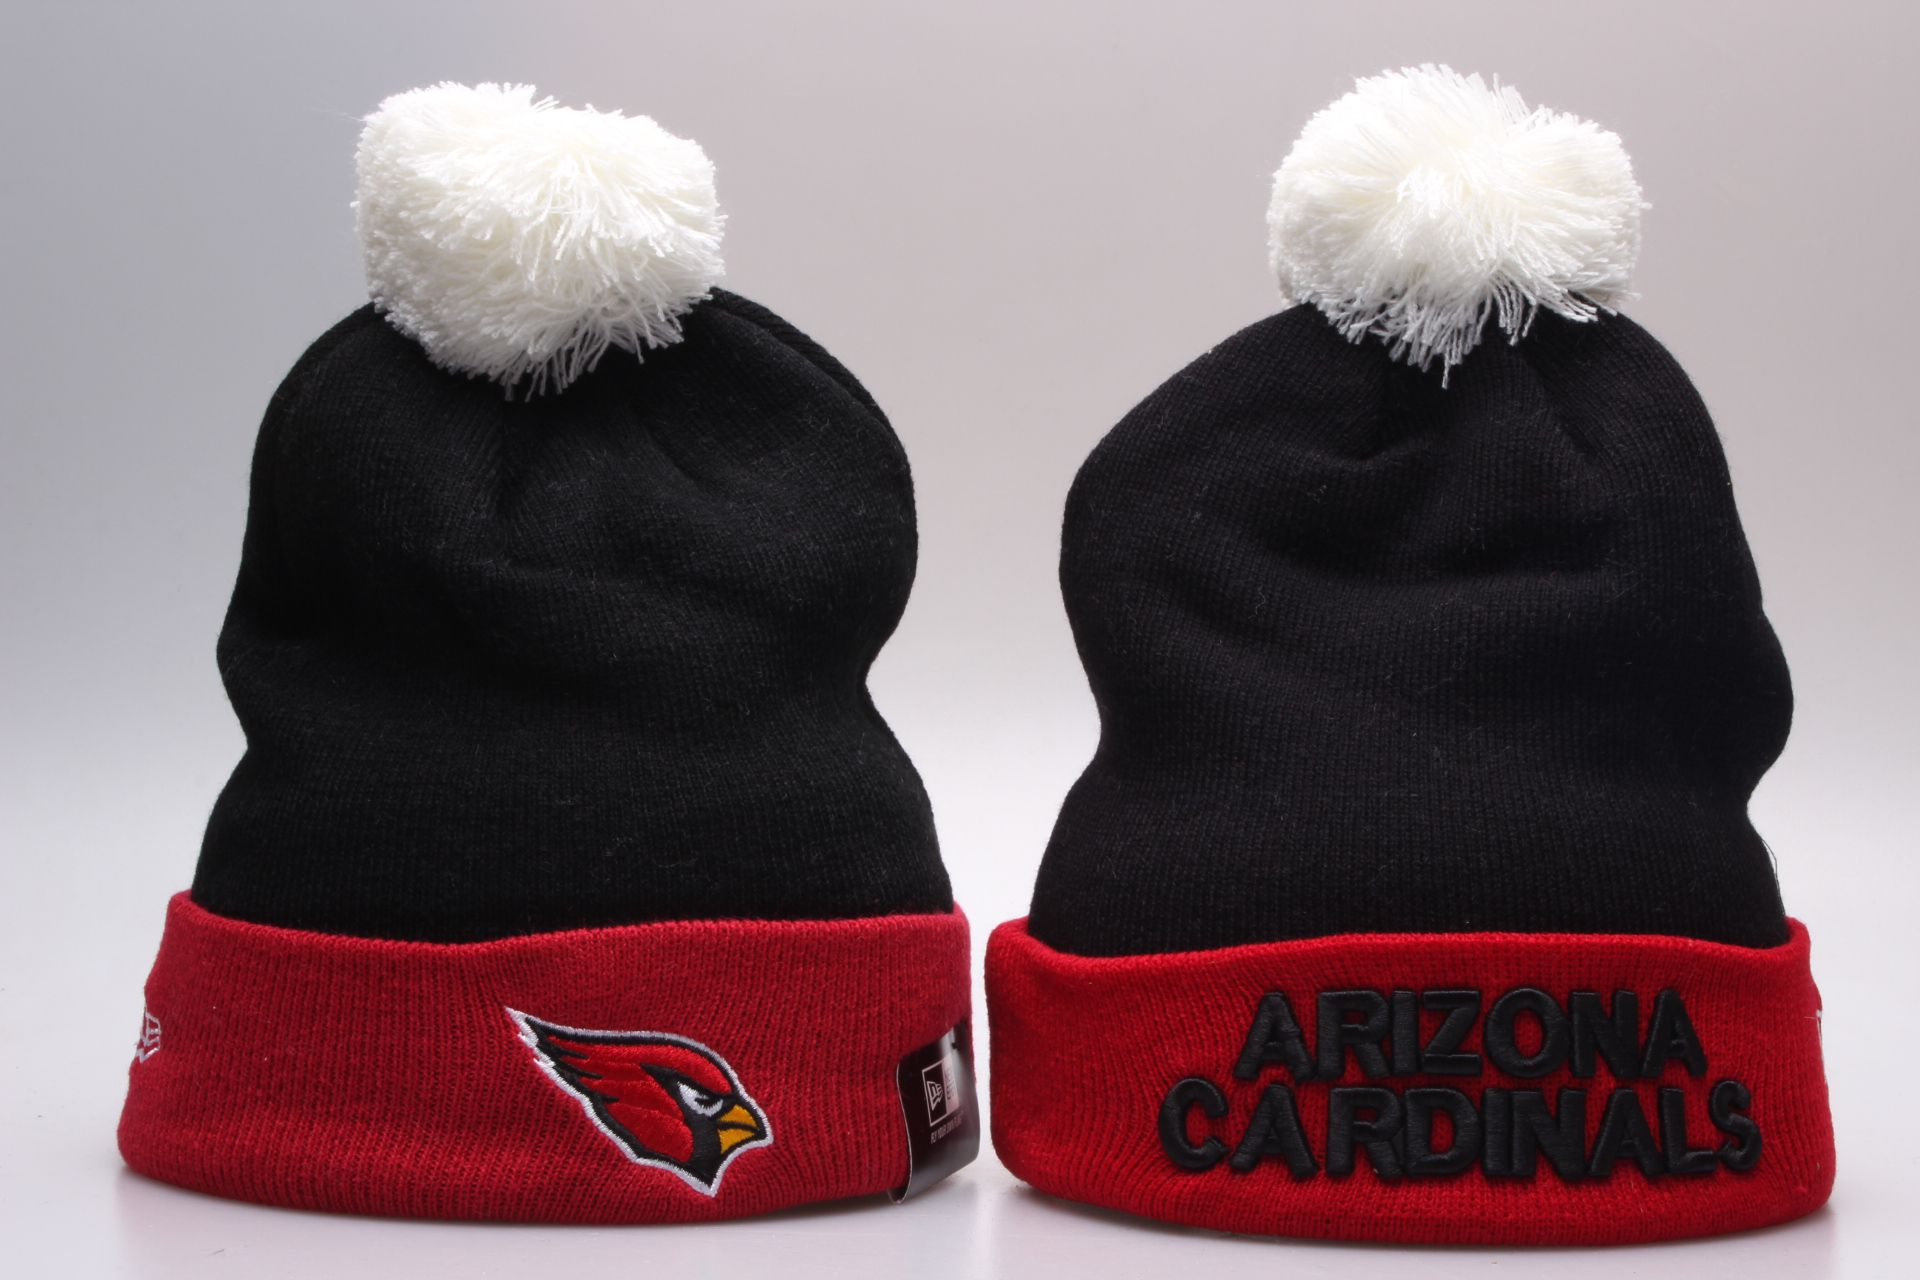 NFL Arizona Cardinals Beanie hot hat2